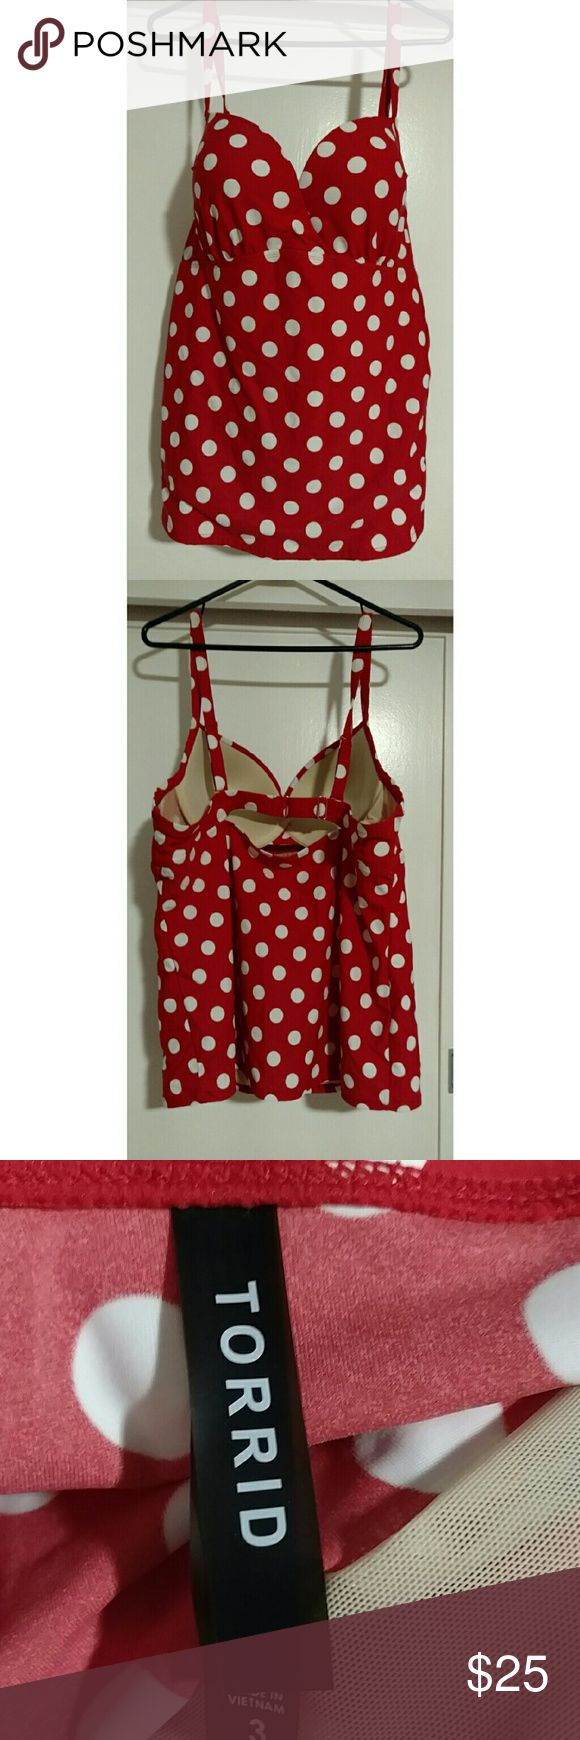 Torrid Red White Polka Dot Tankini Swim Top 3 3X Torrid Red White Polka Dot Tankini Swim Top Sz 3 3X. Cleavage enhancing padding and underwire. Preowned very nice condition. So cute! torrid Swim Bikinis